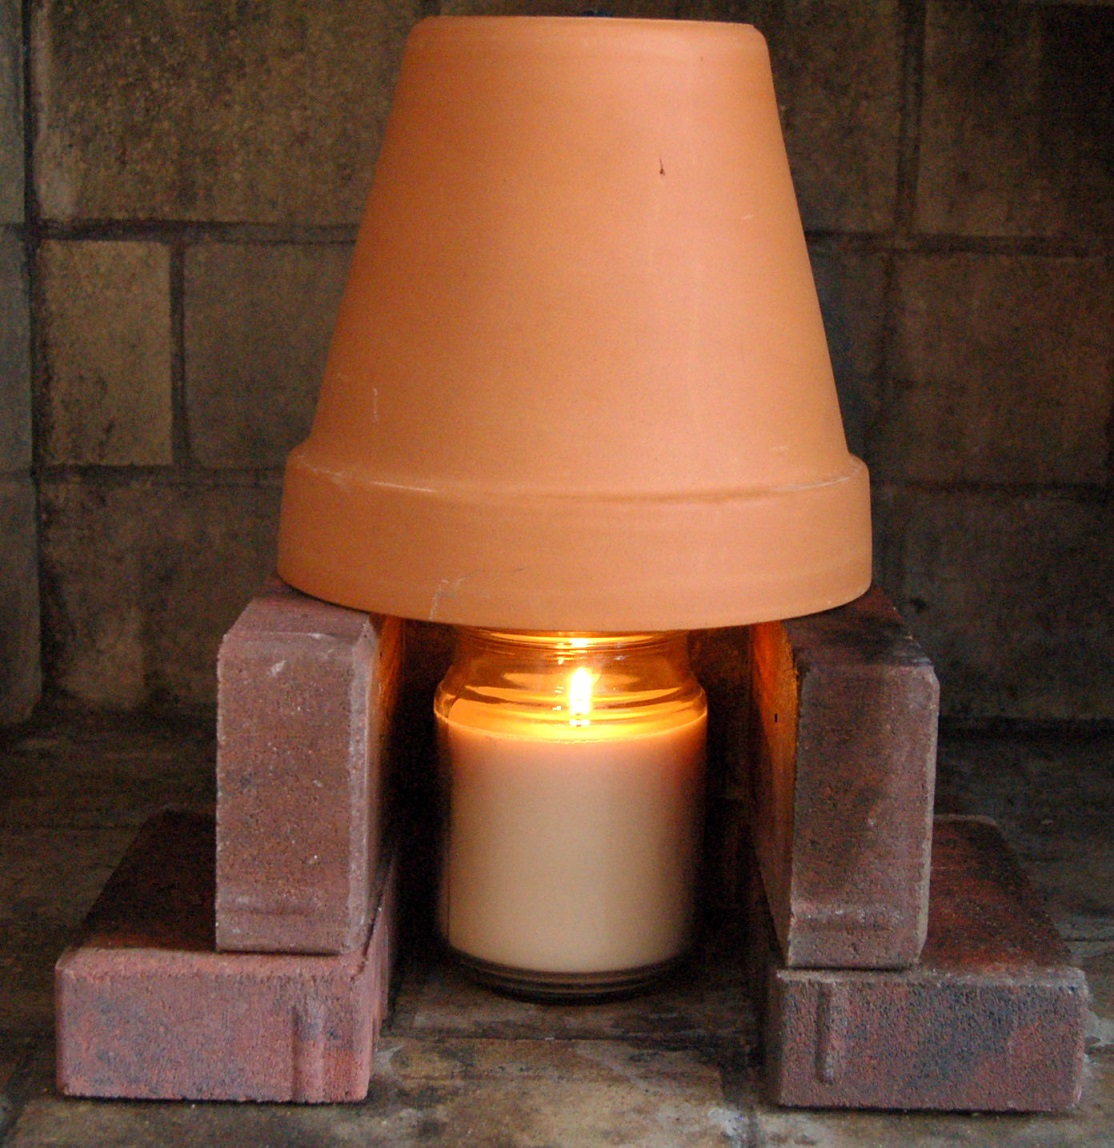 improvised-terra-cotta-pot-heater